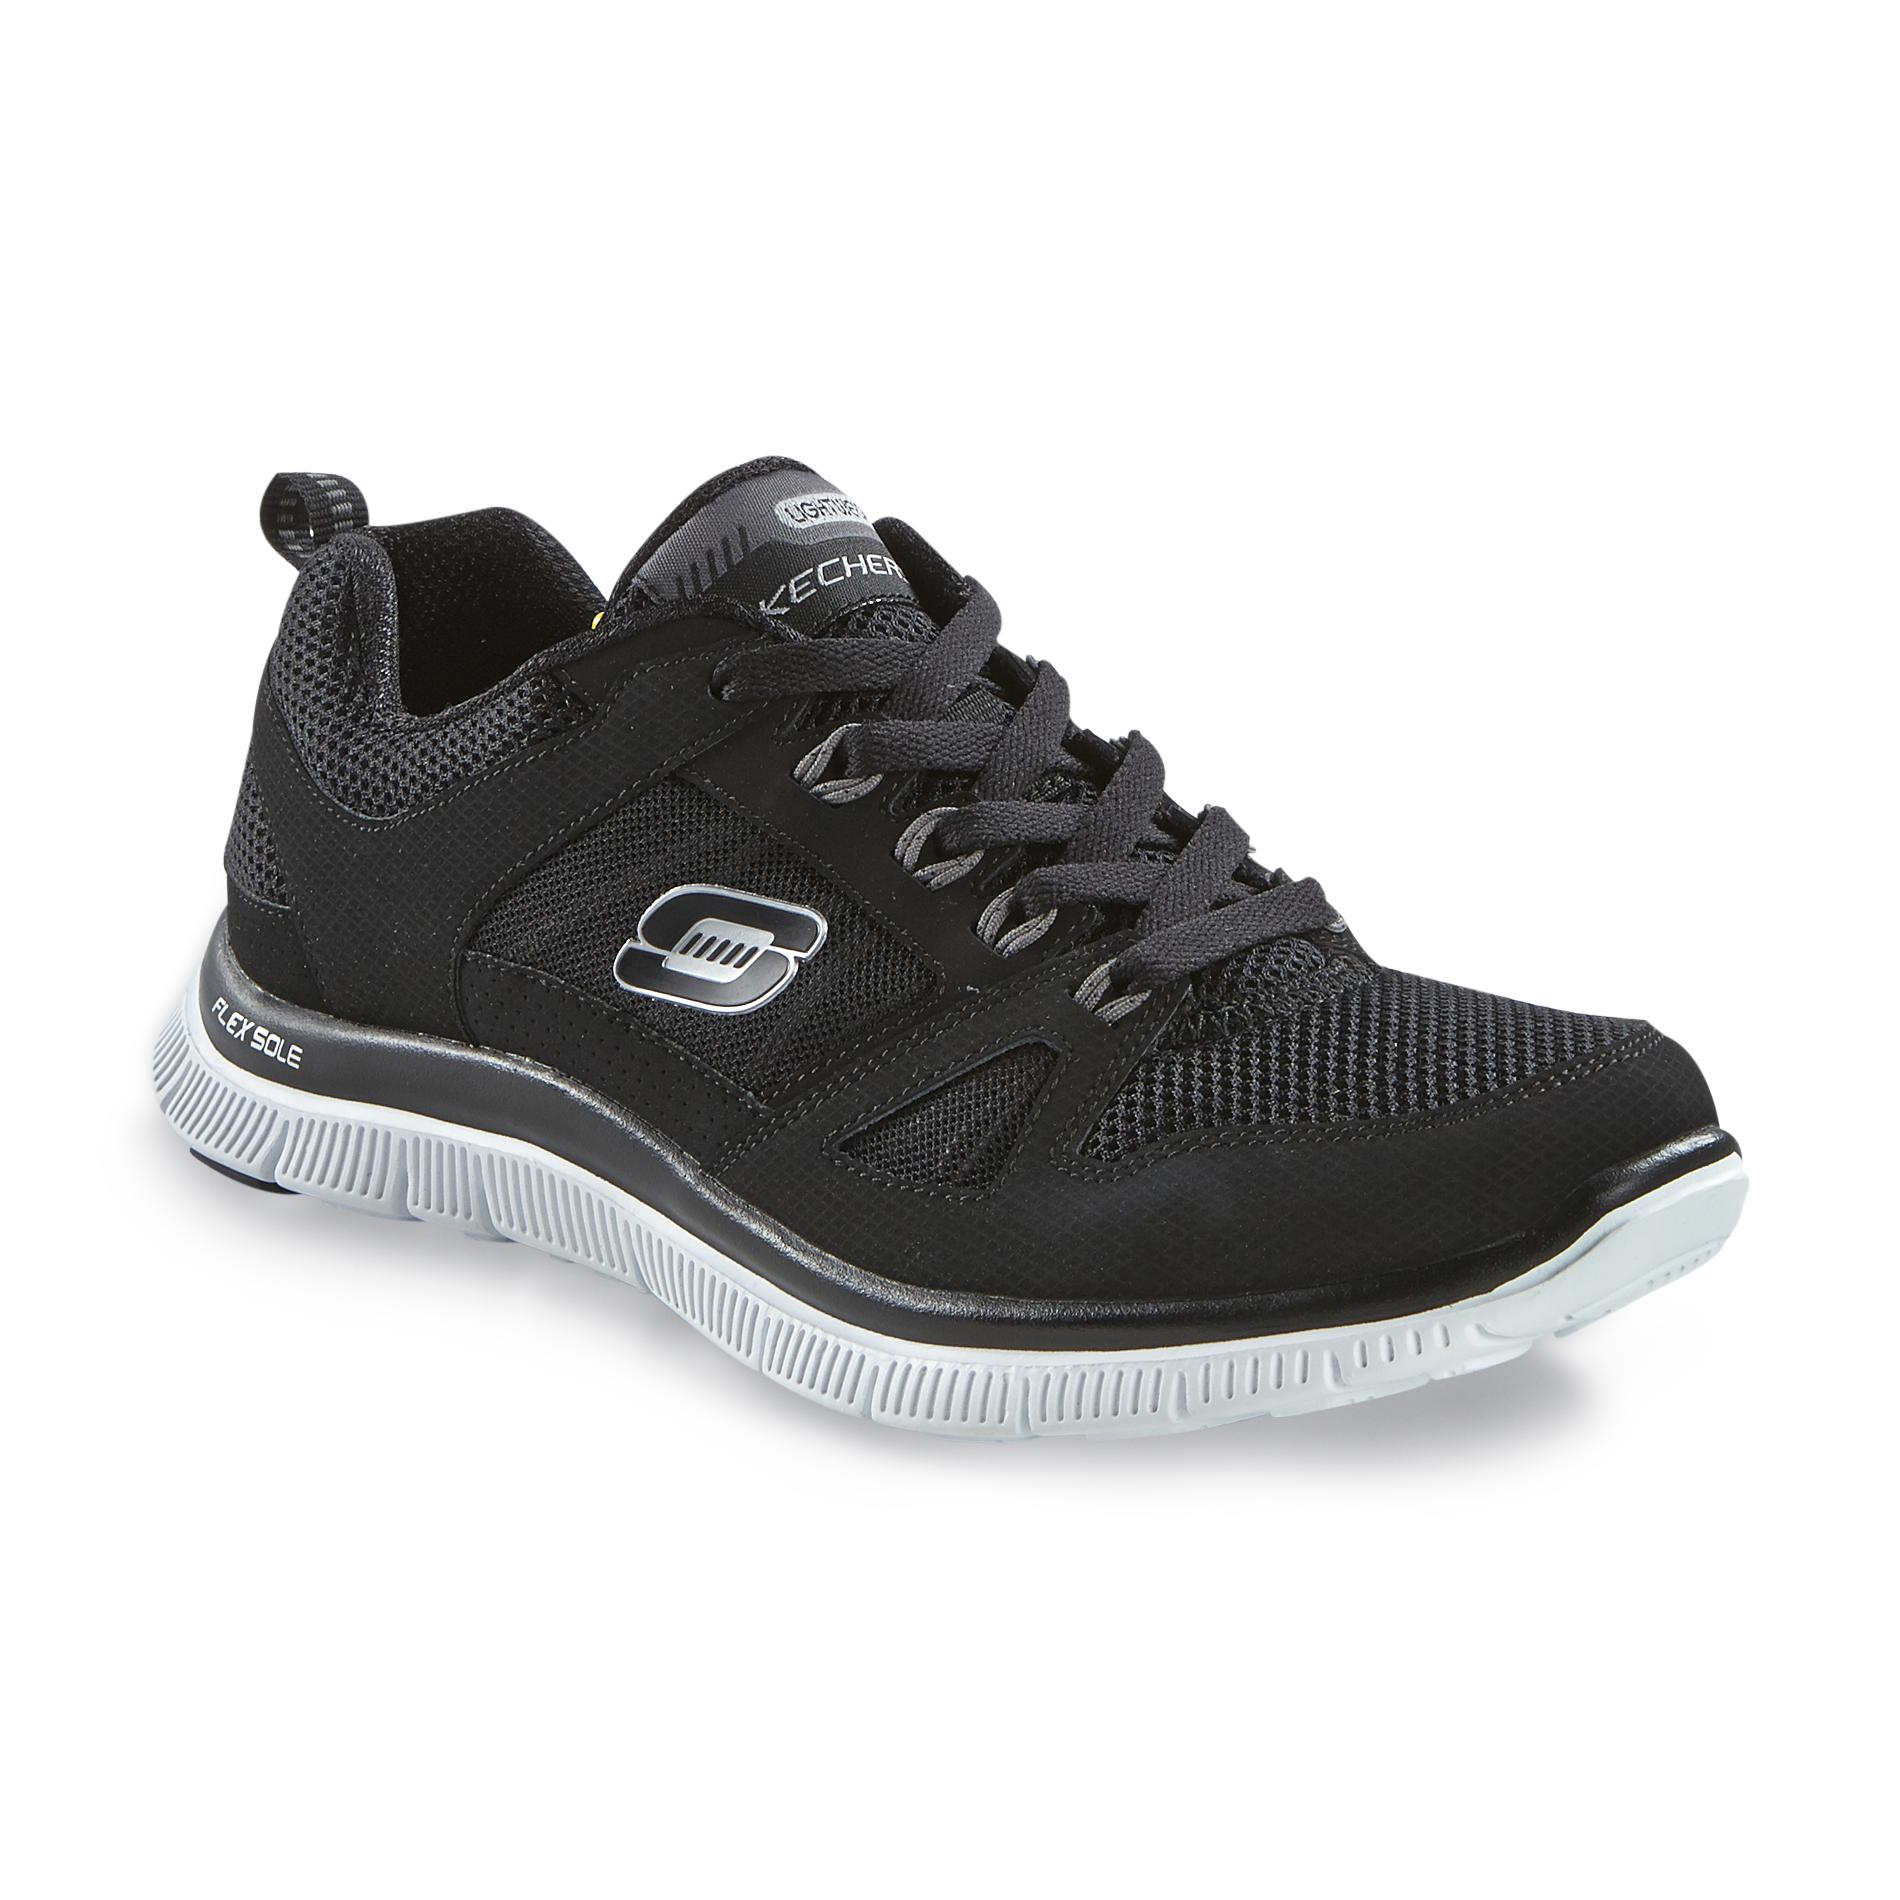 Women's Flex Appeal - Spring Fever Black Athletic Shoe